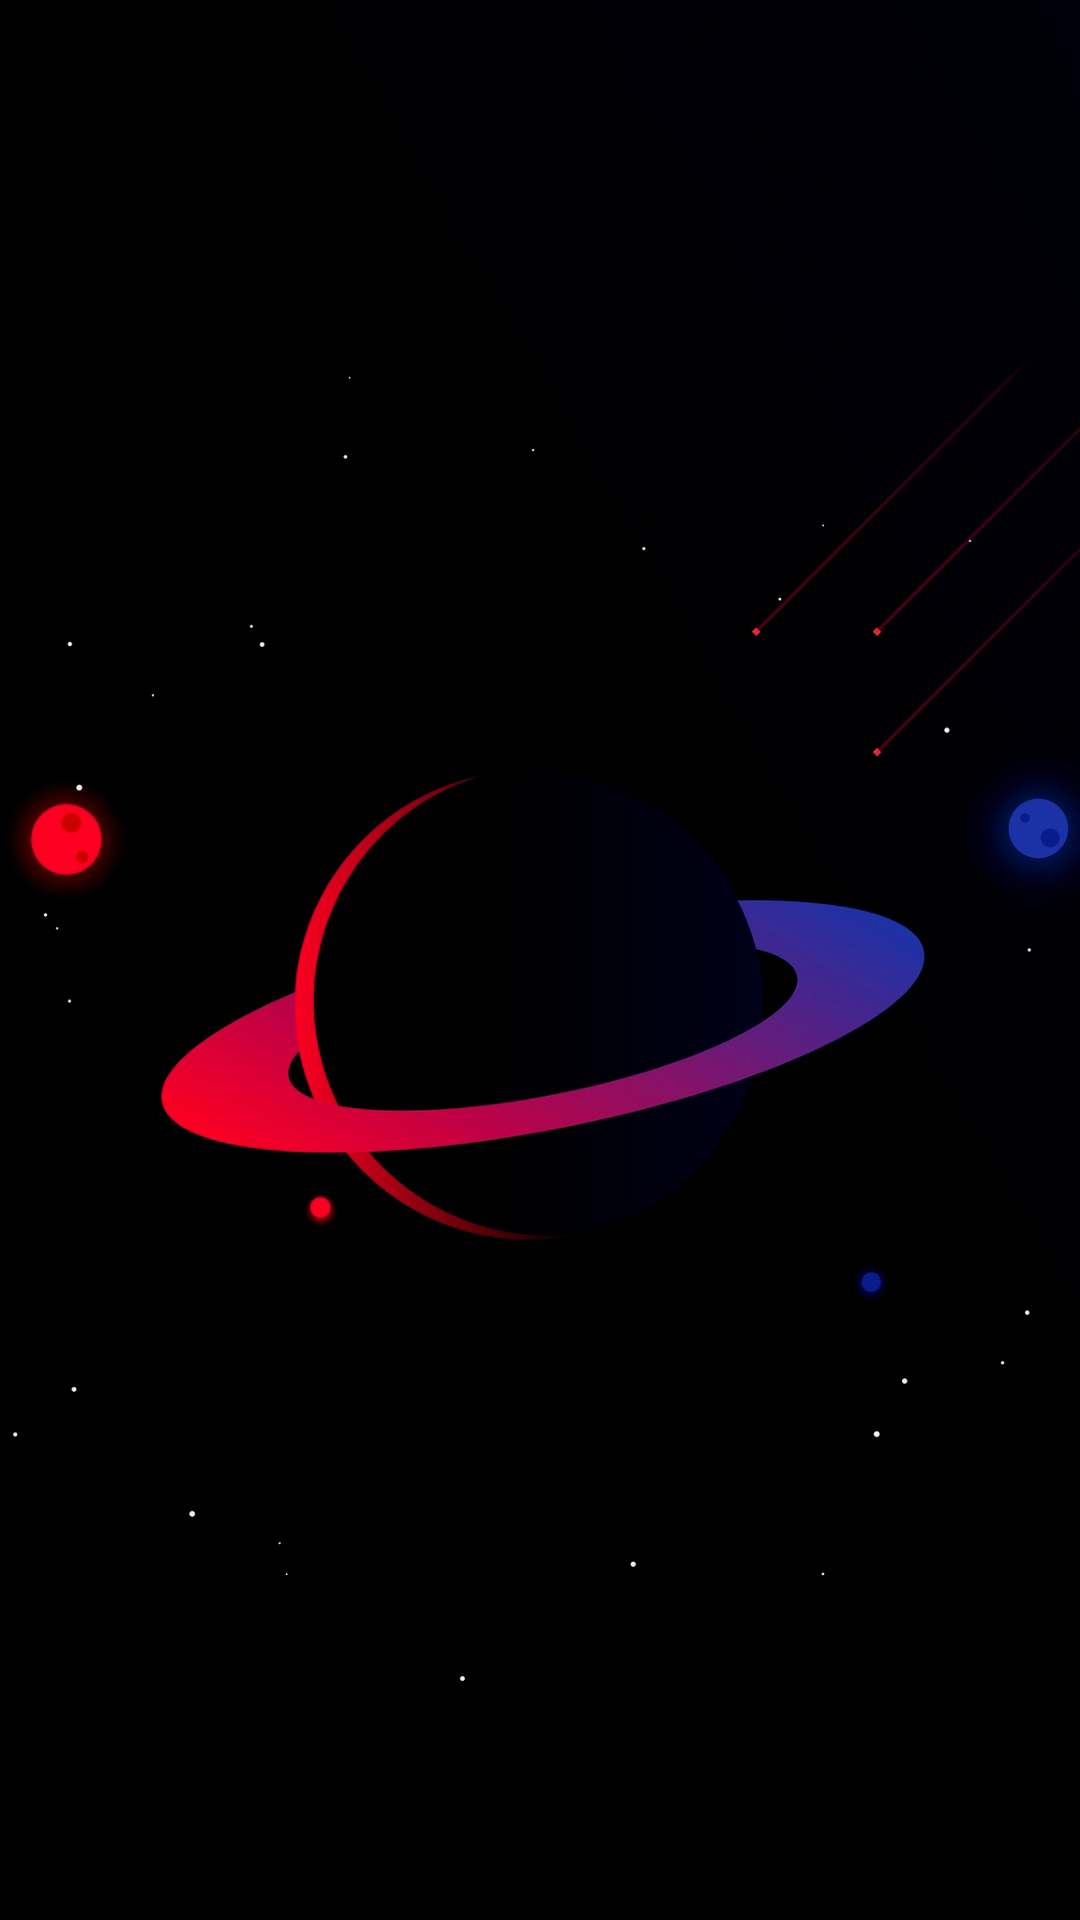 Amoled Space iPhone Wallpaper